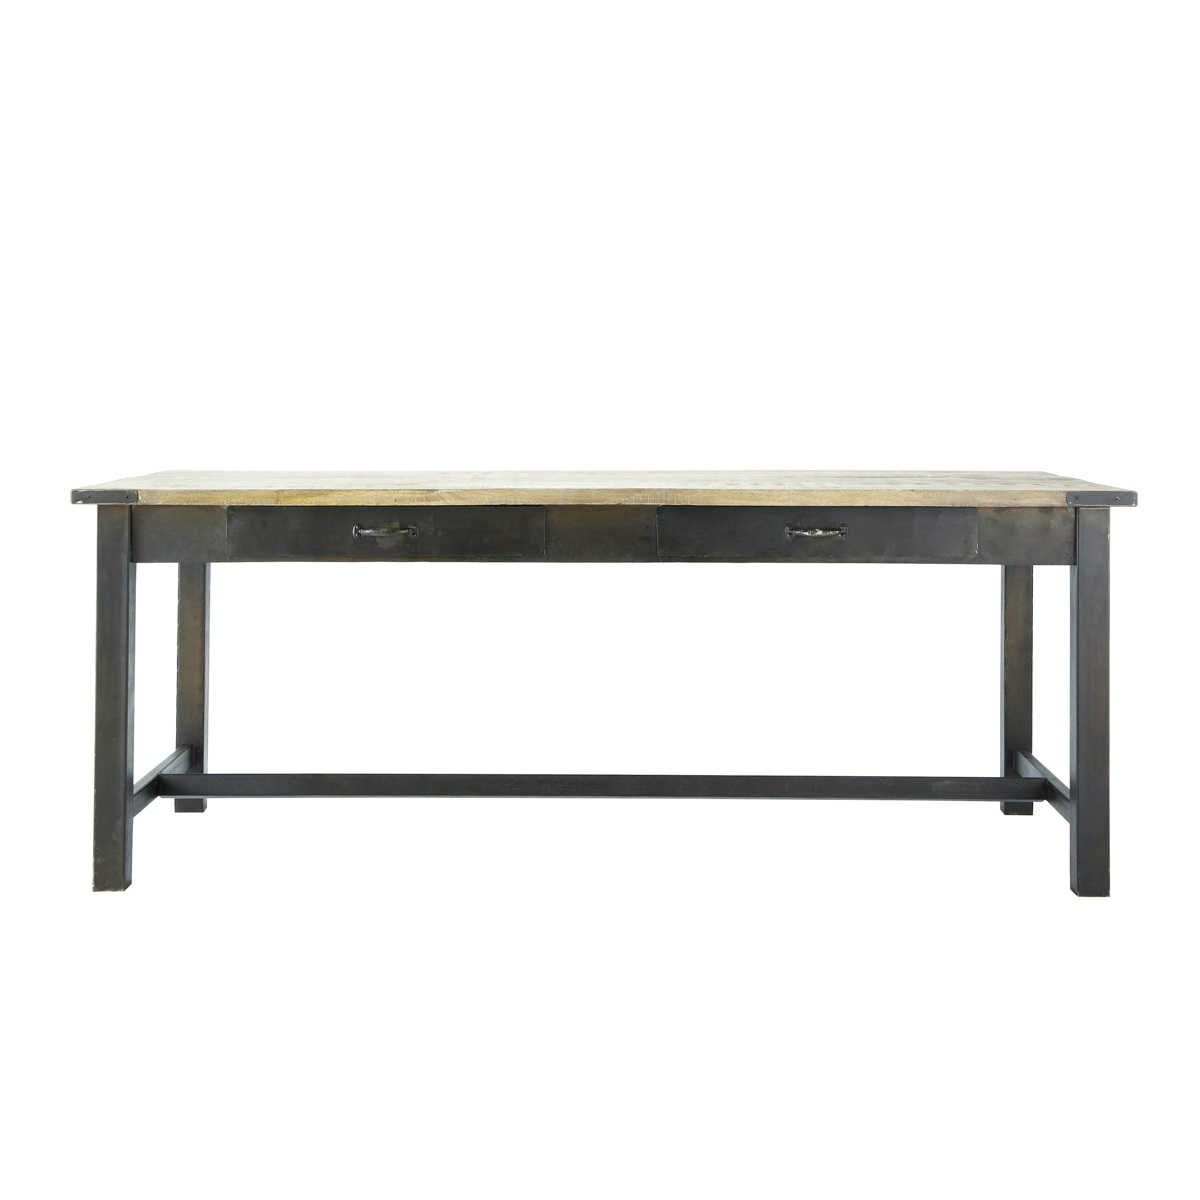 Table de salle manger en manguier et m tal l 200 cm for Table haute cuisine industrielle